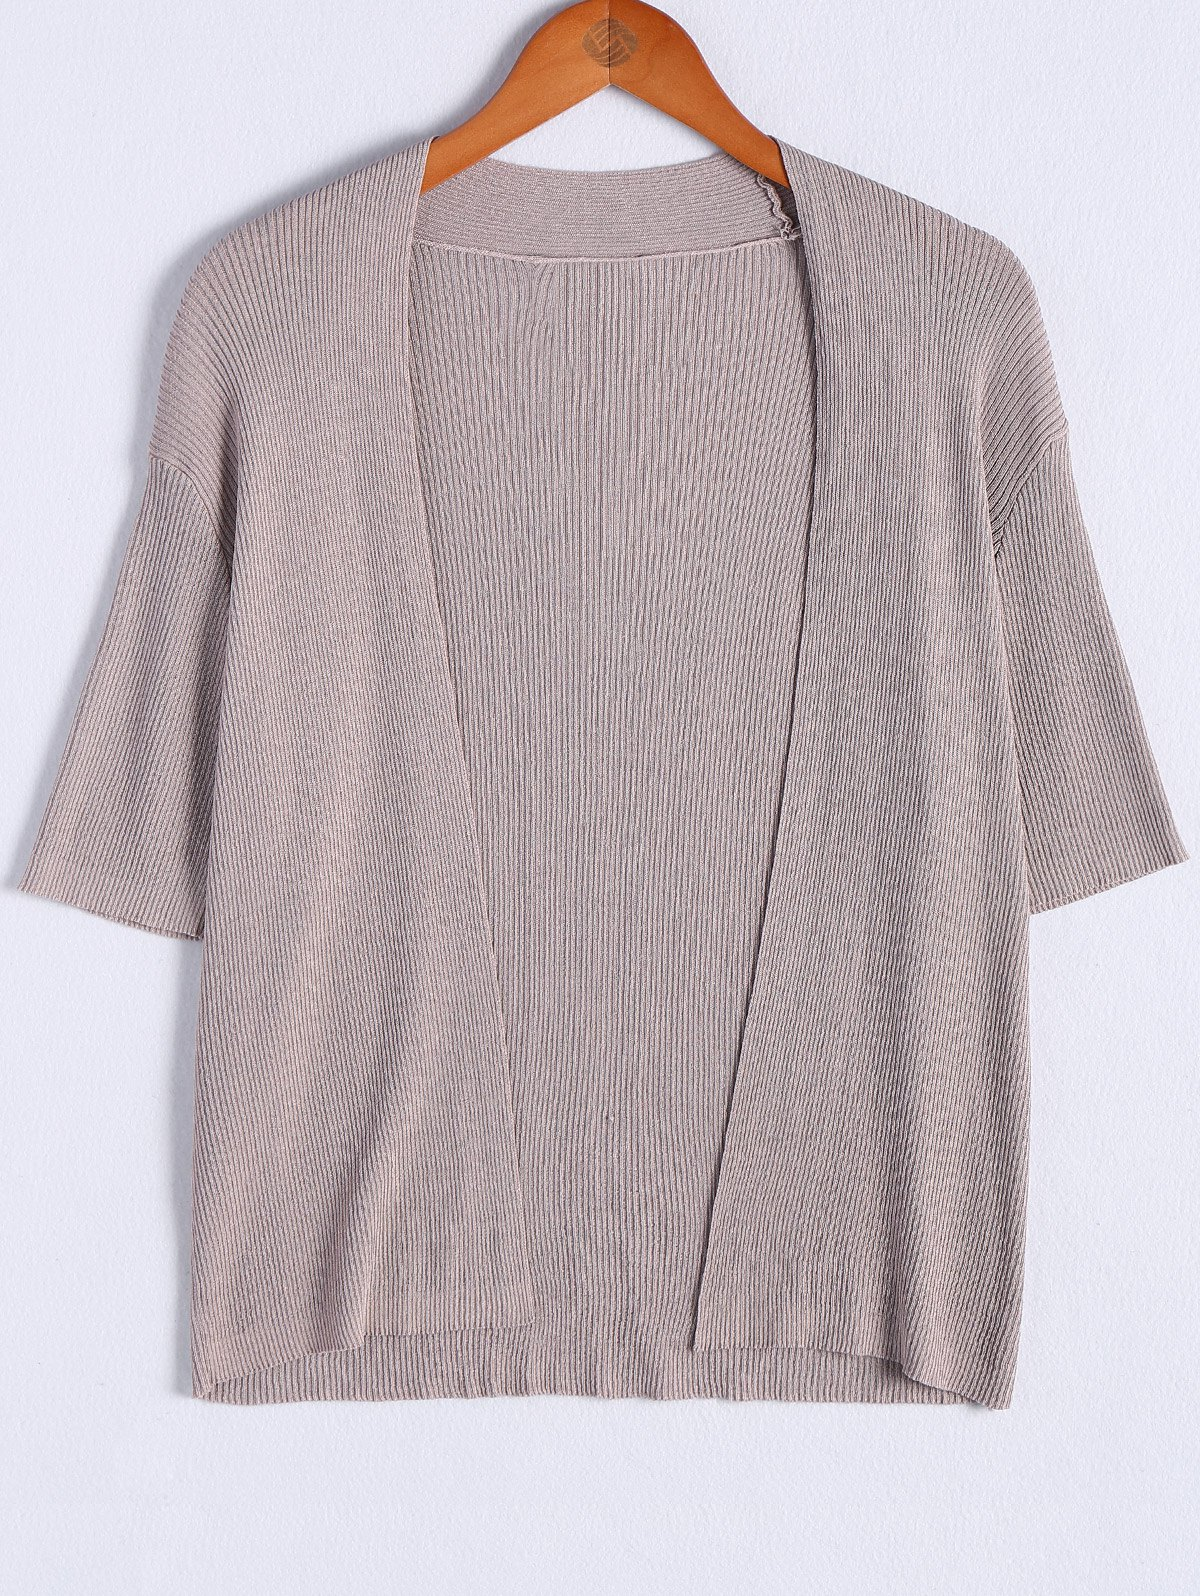 Simple Design Women's 3/4 Sleeve Knitting Thin Cardigan - DARK APRICOT ONE SIZE(FIT SIZE XS TO M)